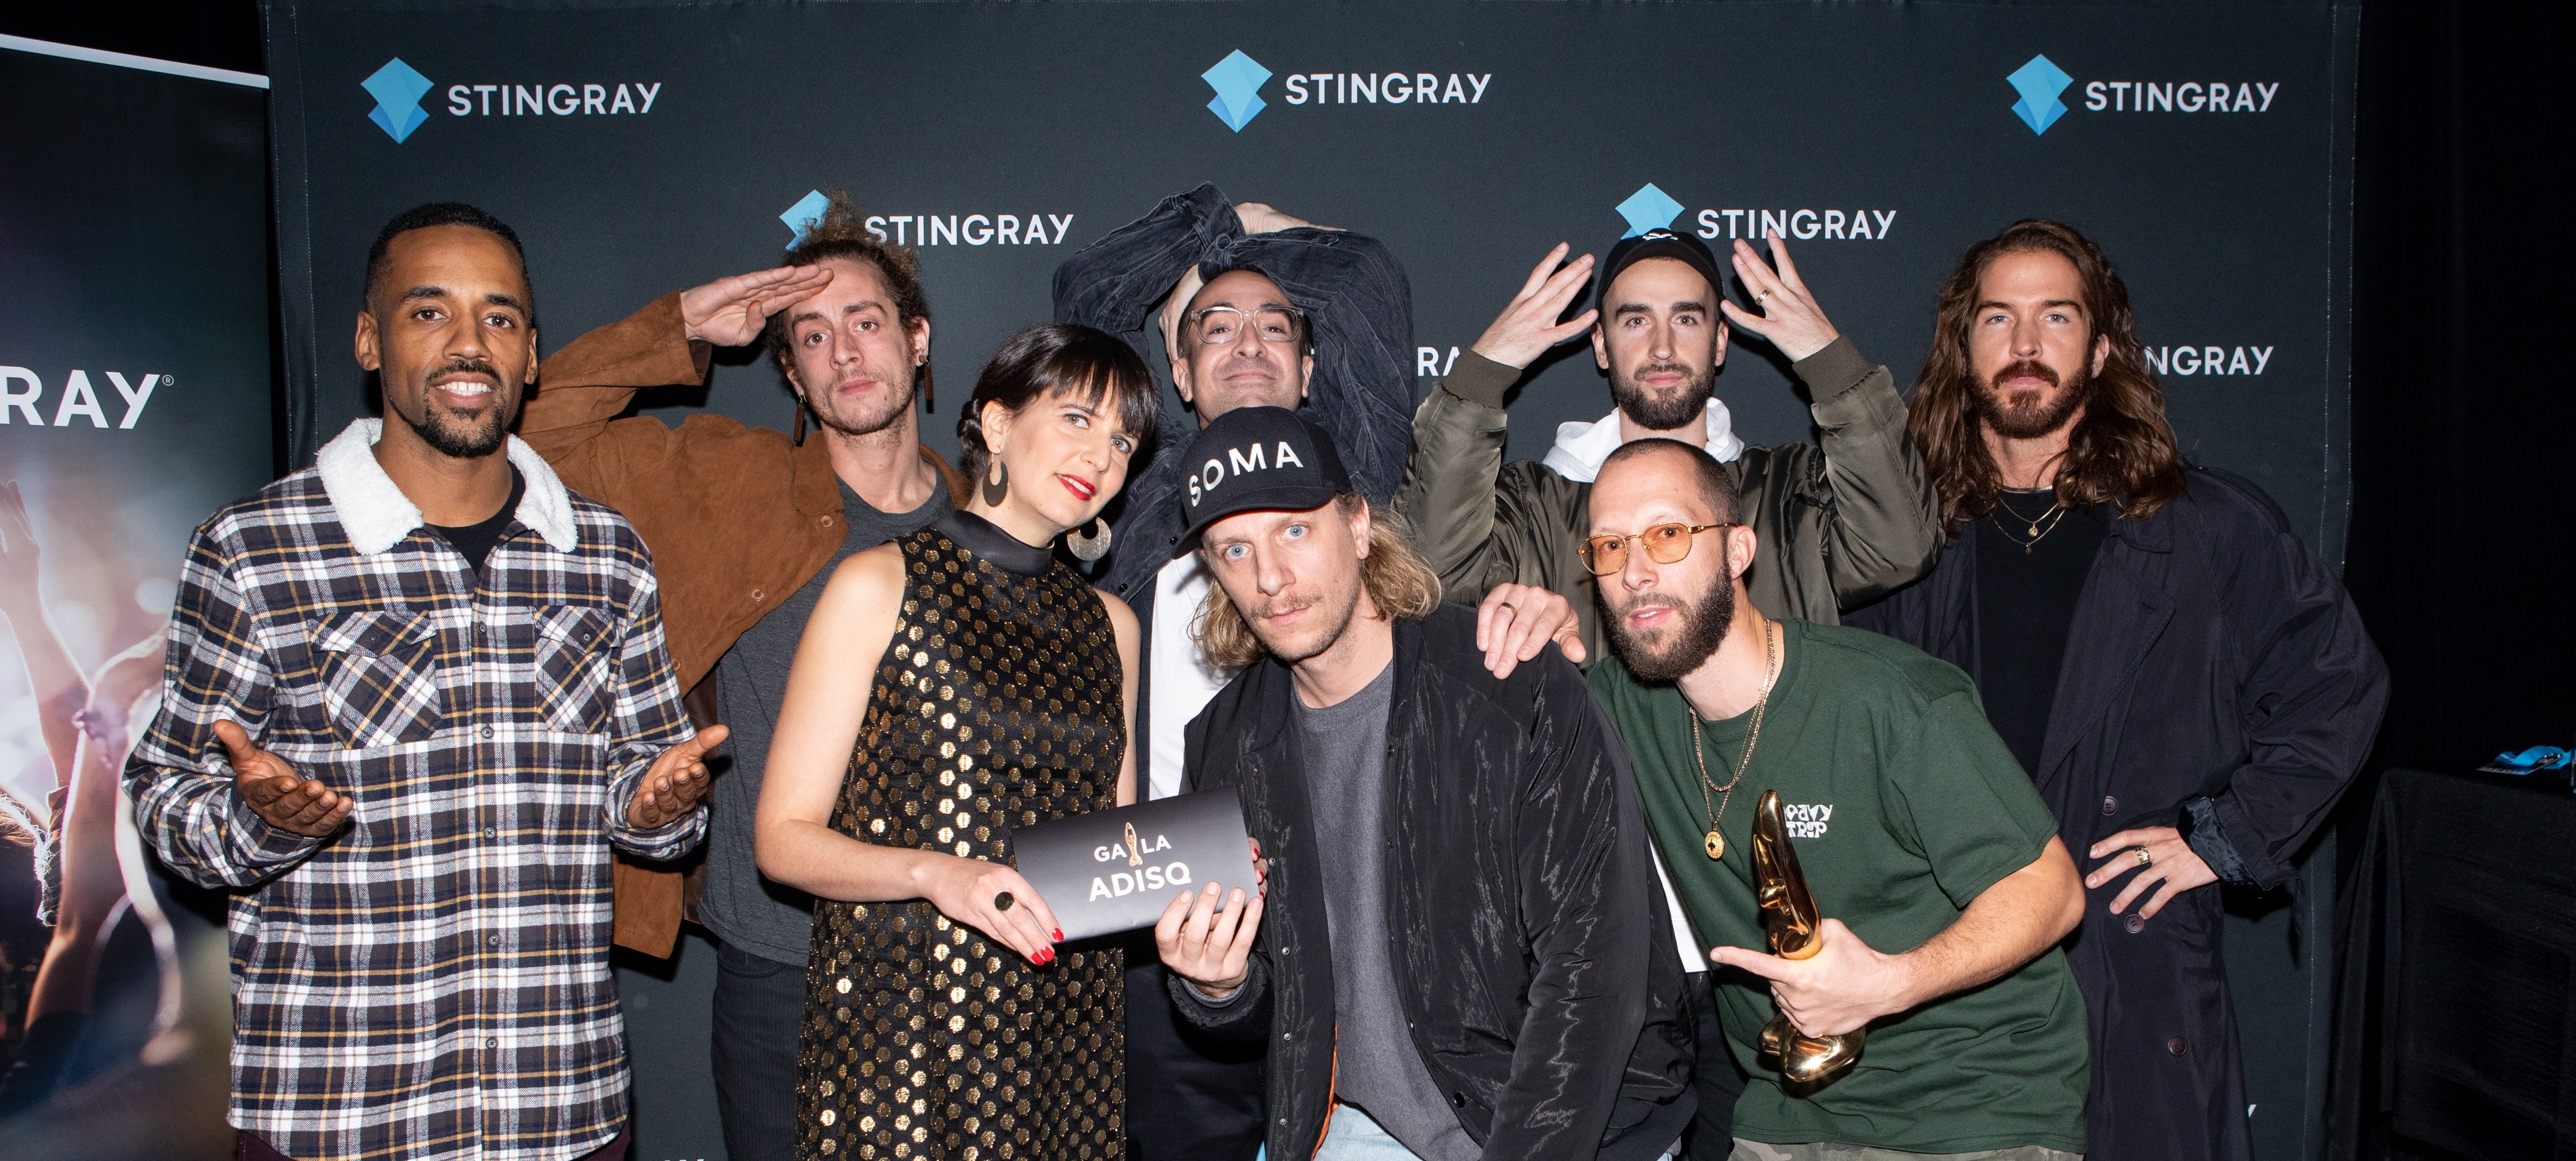 Alaclair Ensemble (Prix Étoiles Stingray) et Ariane Charbonneau (Stingray)